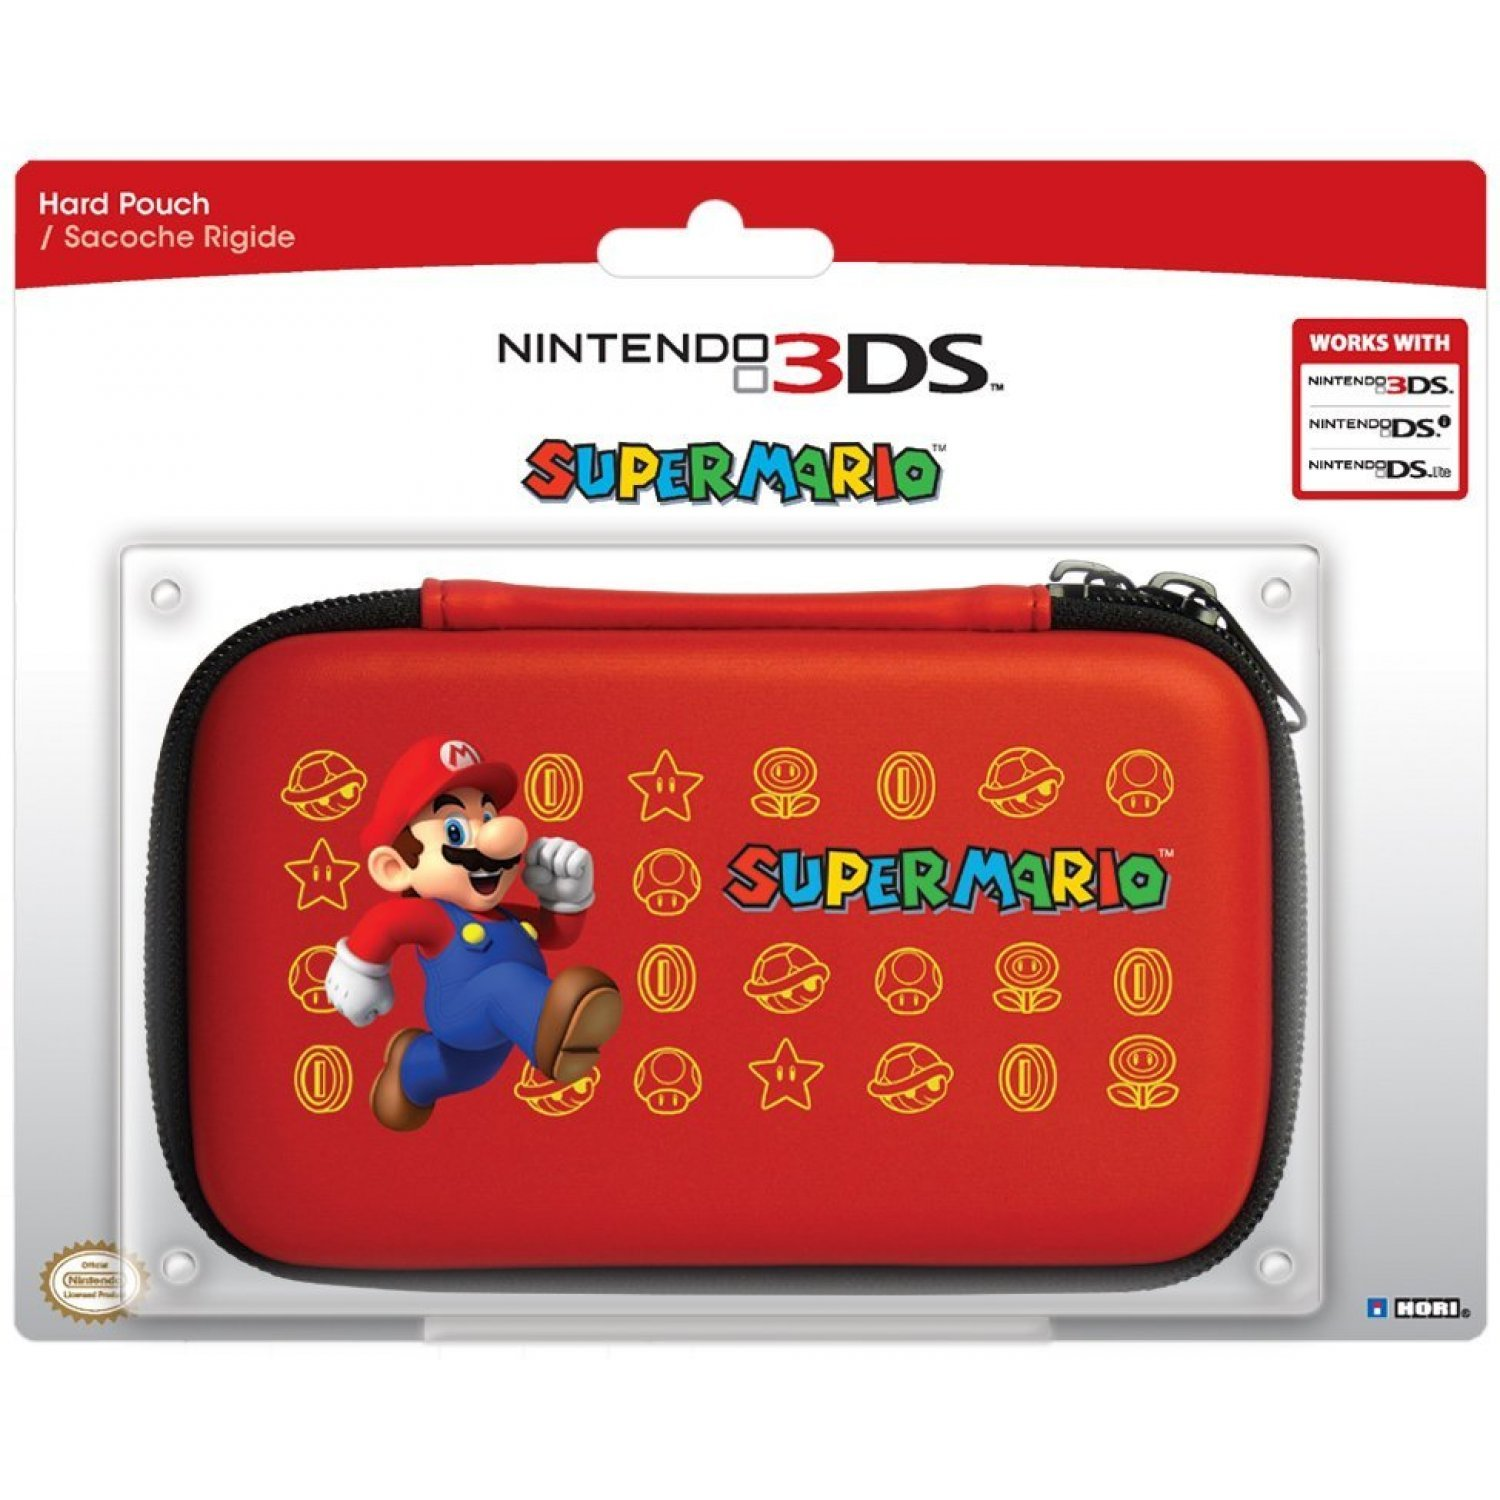 3ds hard pouch 3ds super mario version 2 red. Black Bedroom Furniture Sets. Home Design Ideas